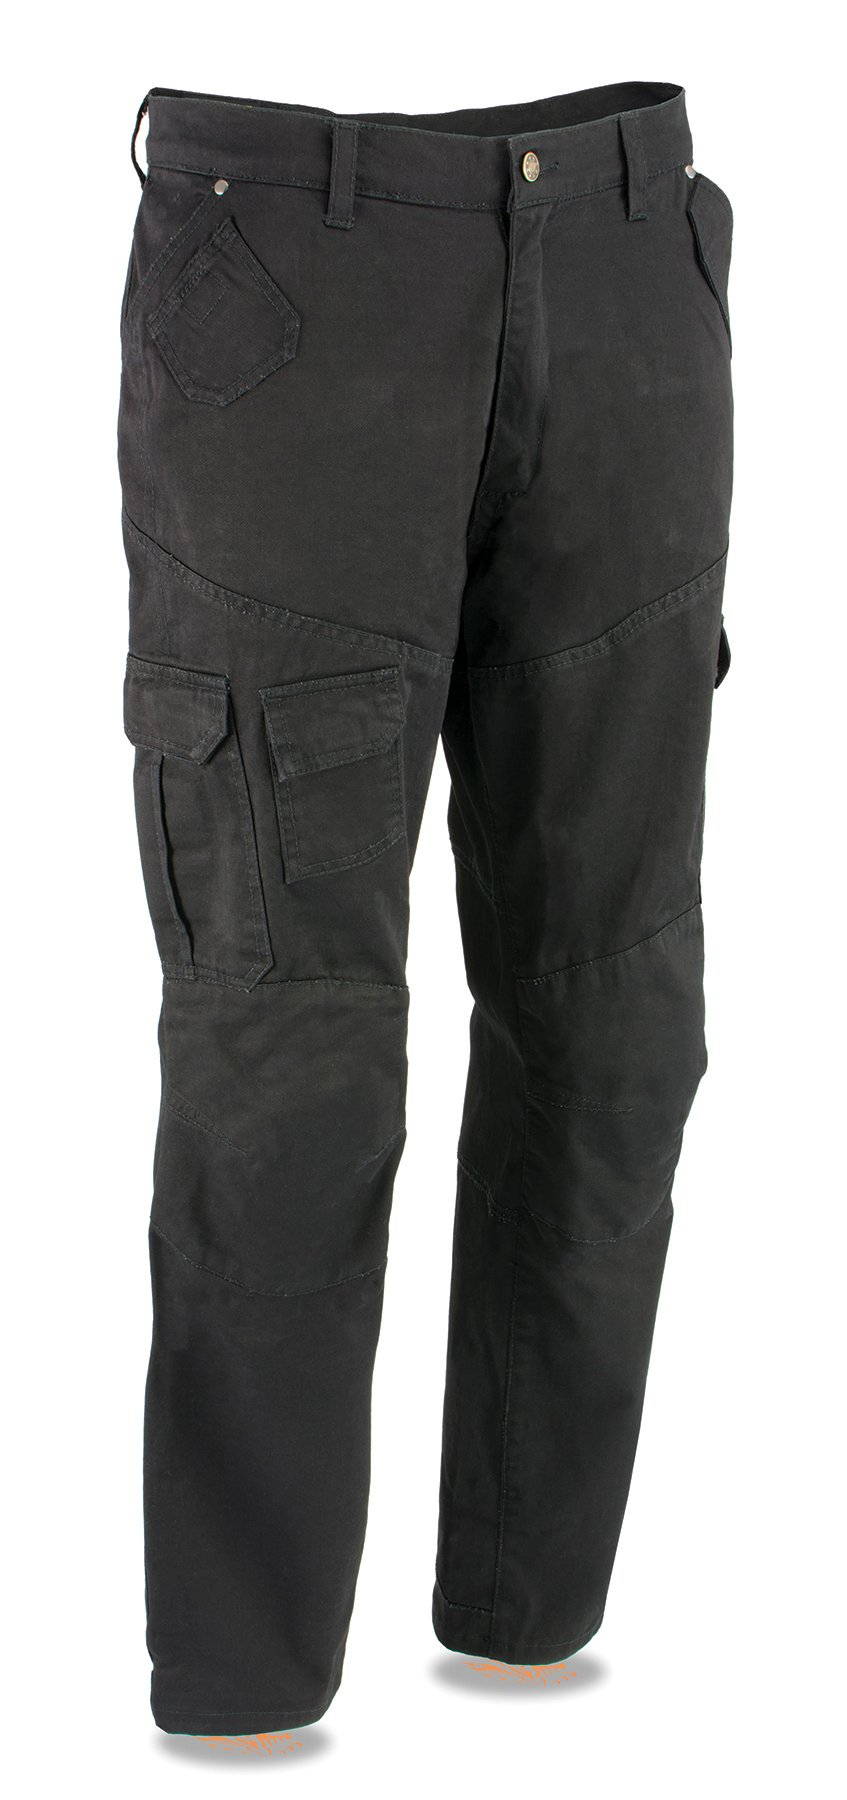 Milwaukee Performance Men's Cargo Jeans Reinforced with Aramid by Dupont Fibers-Black-28 (Black, 42)